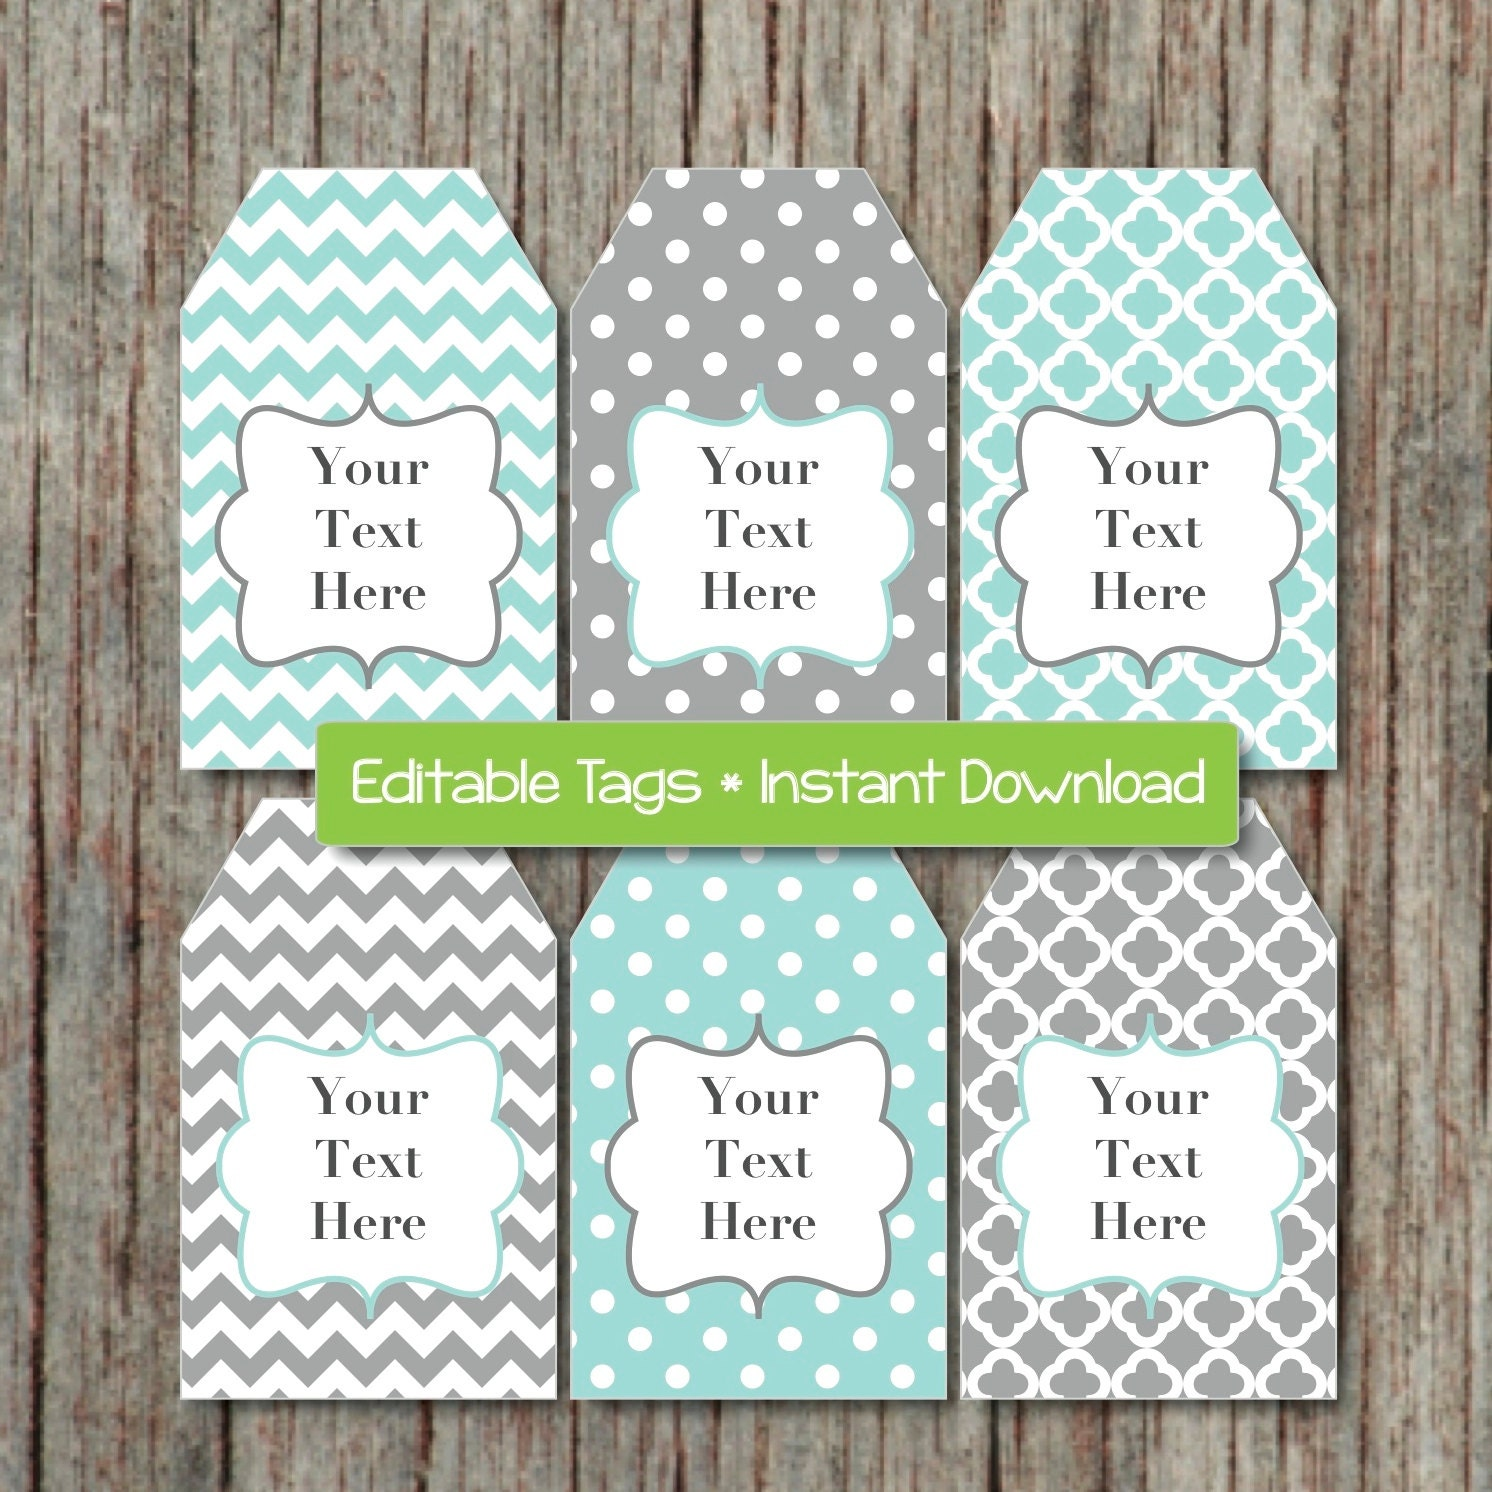 Editable gift tags printable labels digital collage editable for Printable baby shower favor tags